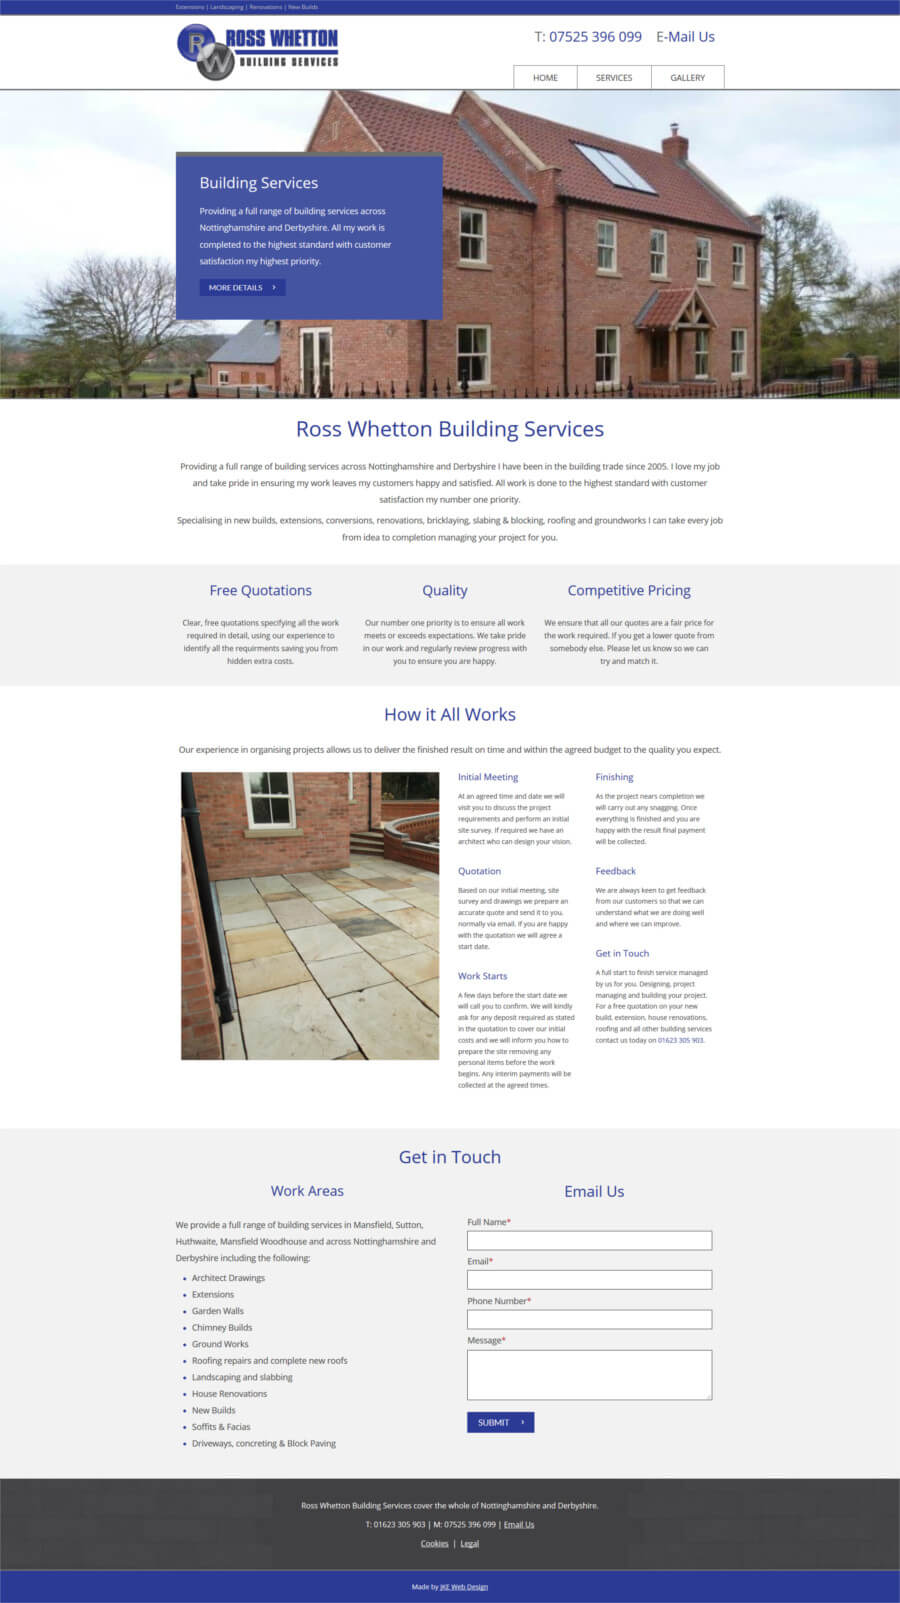 Ross Whetton Building Services website